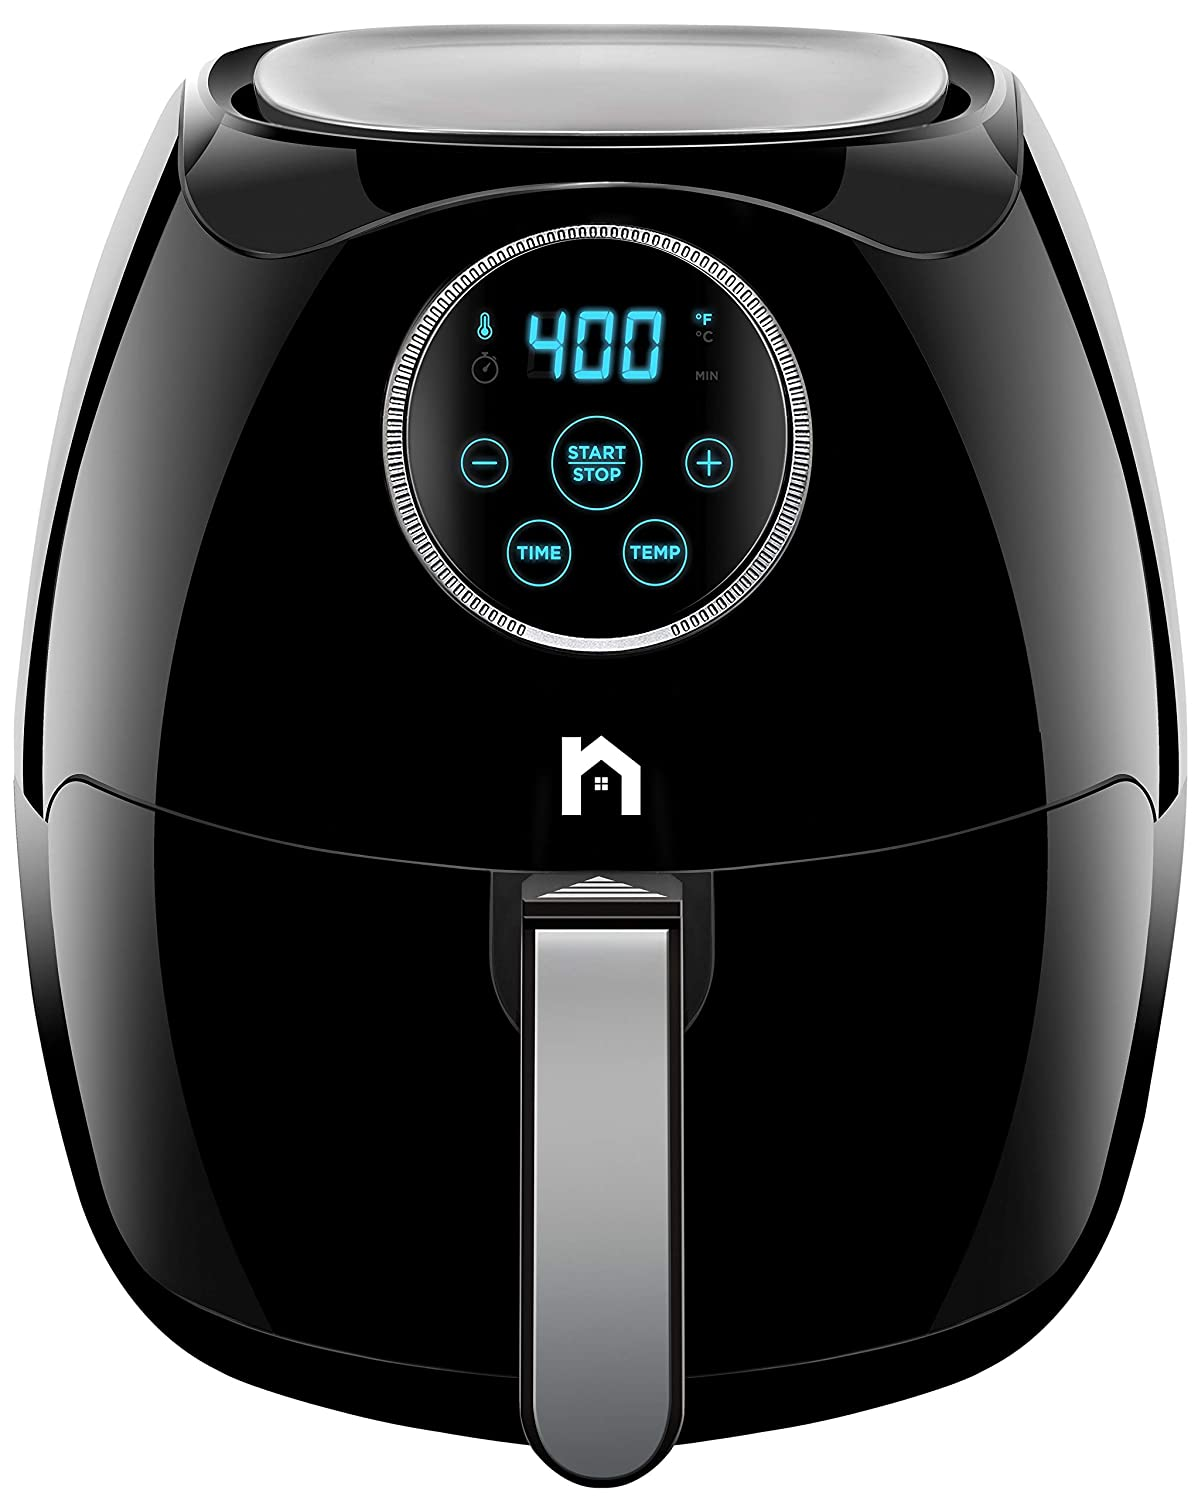 New House Kitchen Digital 6.5 Liter Air Fryer w/Flat Basket Oil-Free Touch Screen AirFryer, Dishwasher-Safe Parts, Fast Healthier Food, 60 Min Timer & Auto Shut Off, Extra Large Family Size, Black